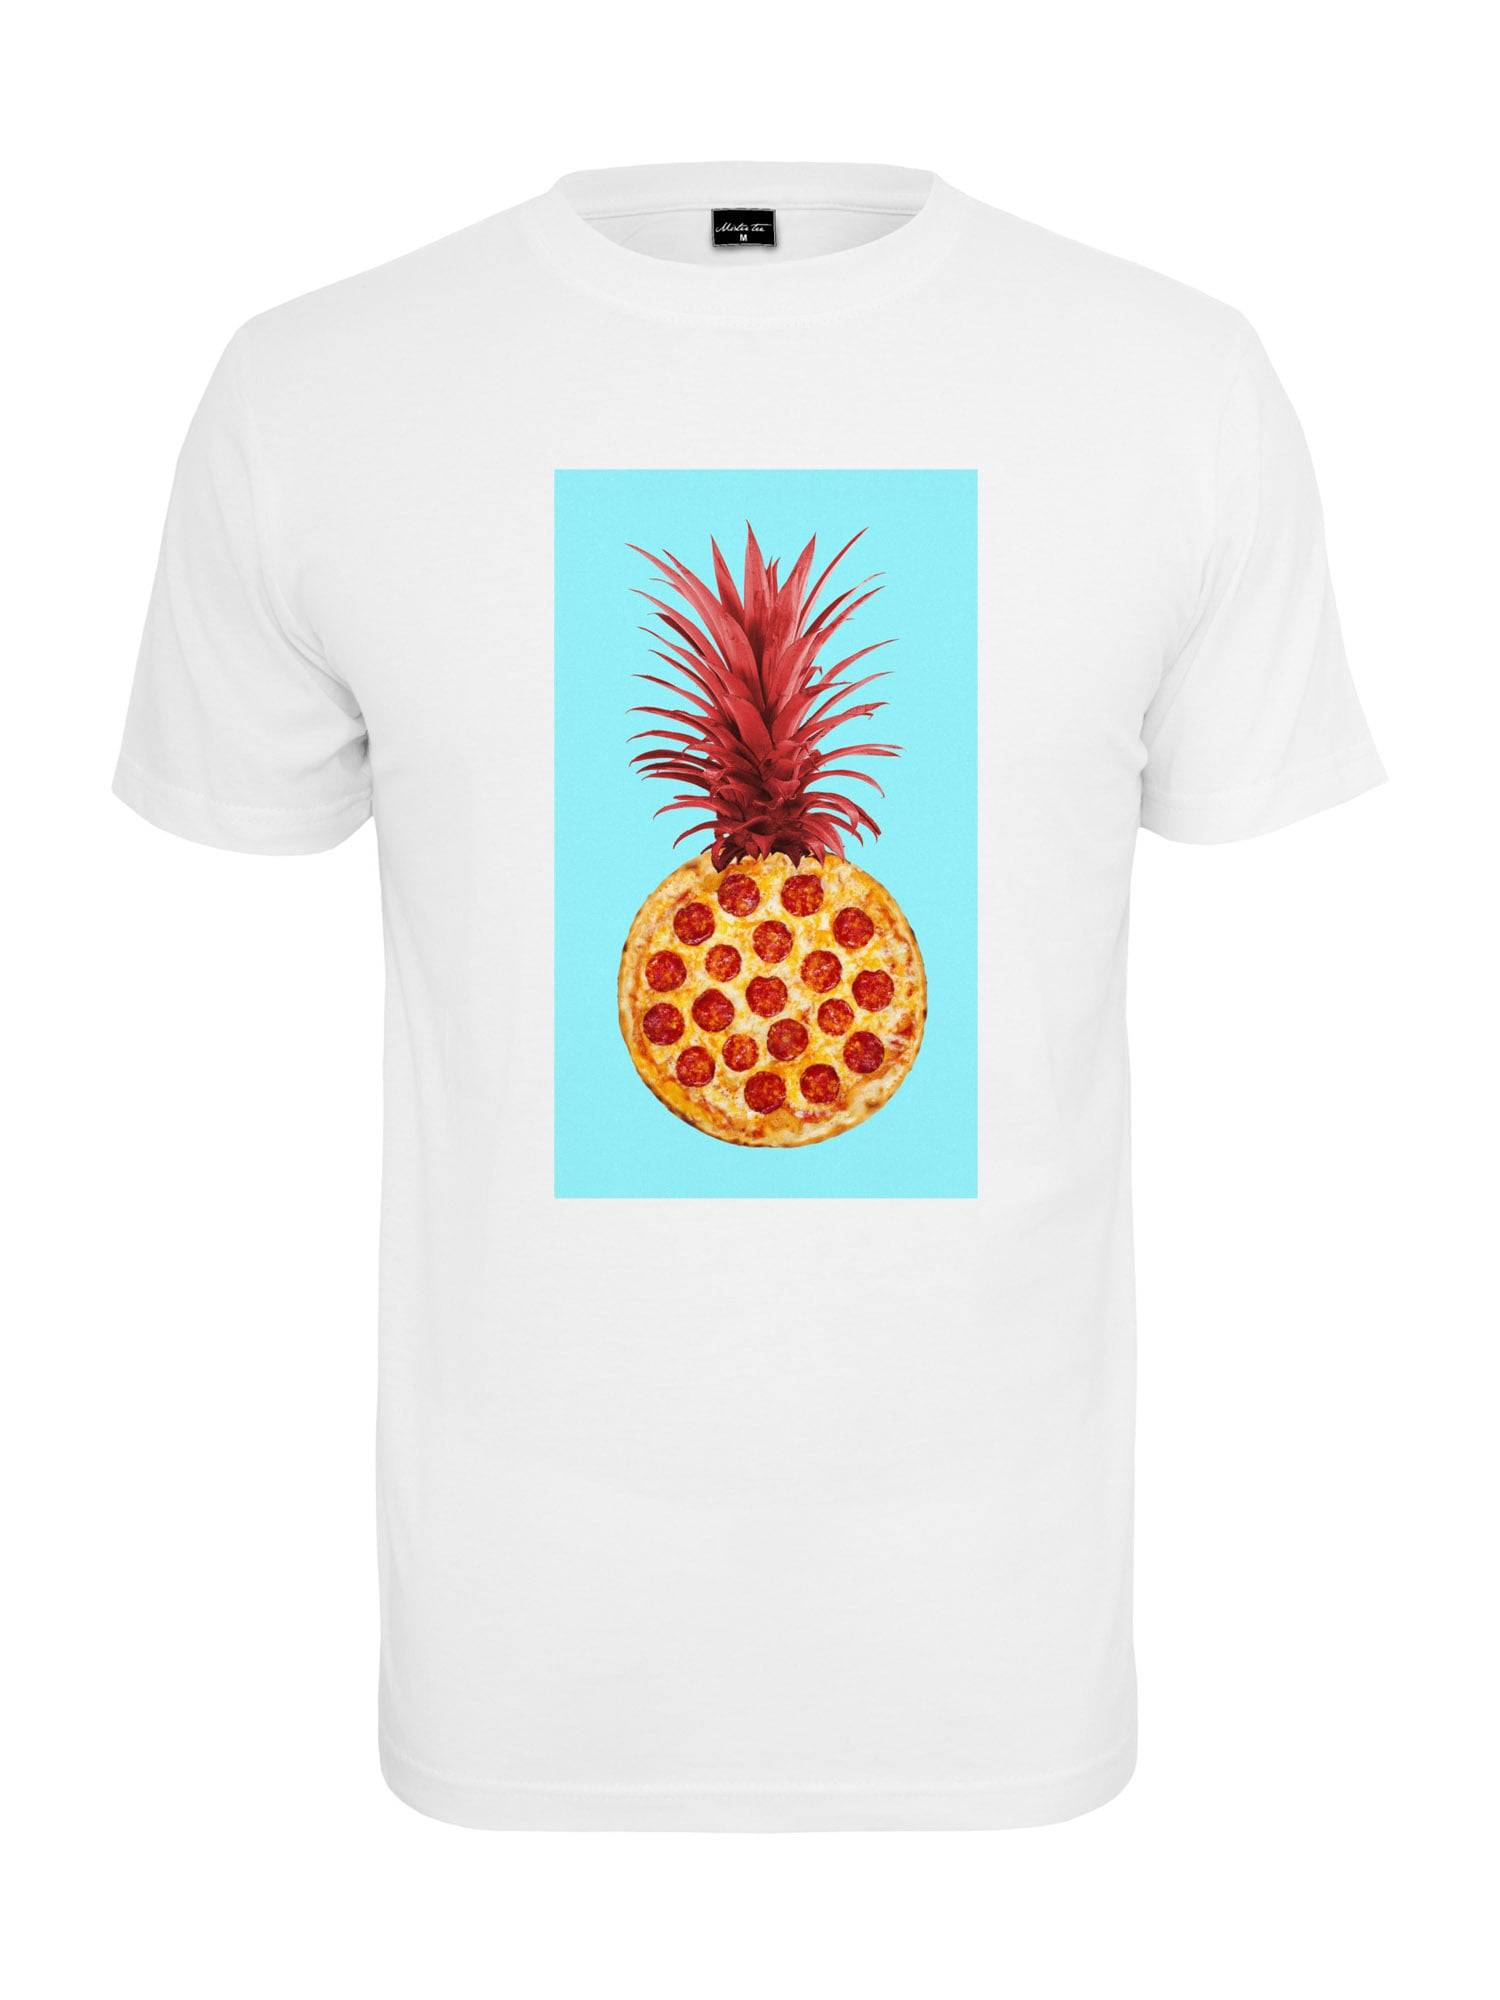 Tee T-Shirt 'Pizza Pineapple'  - Blanc - Taille: S - male